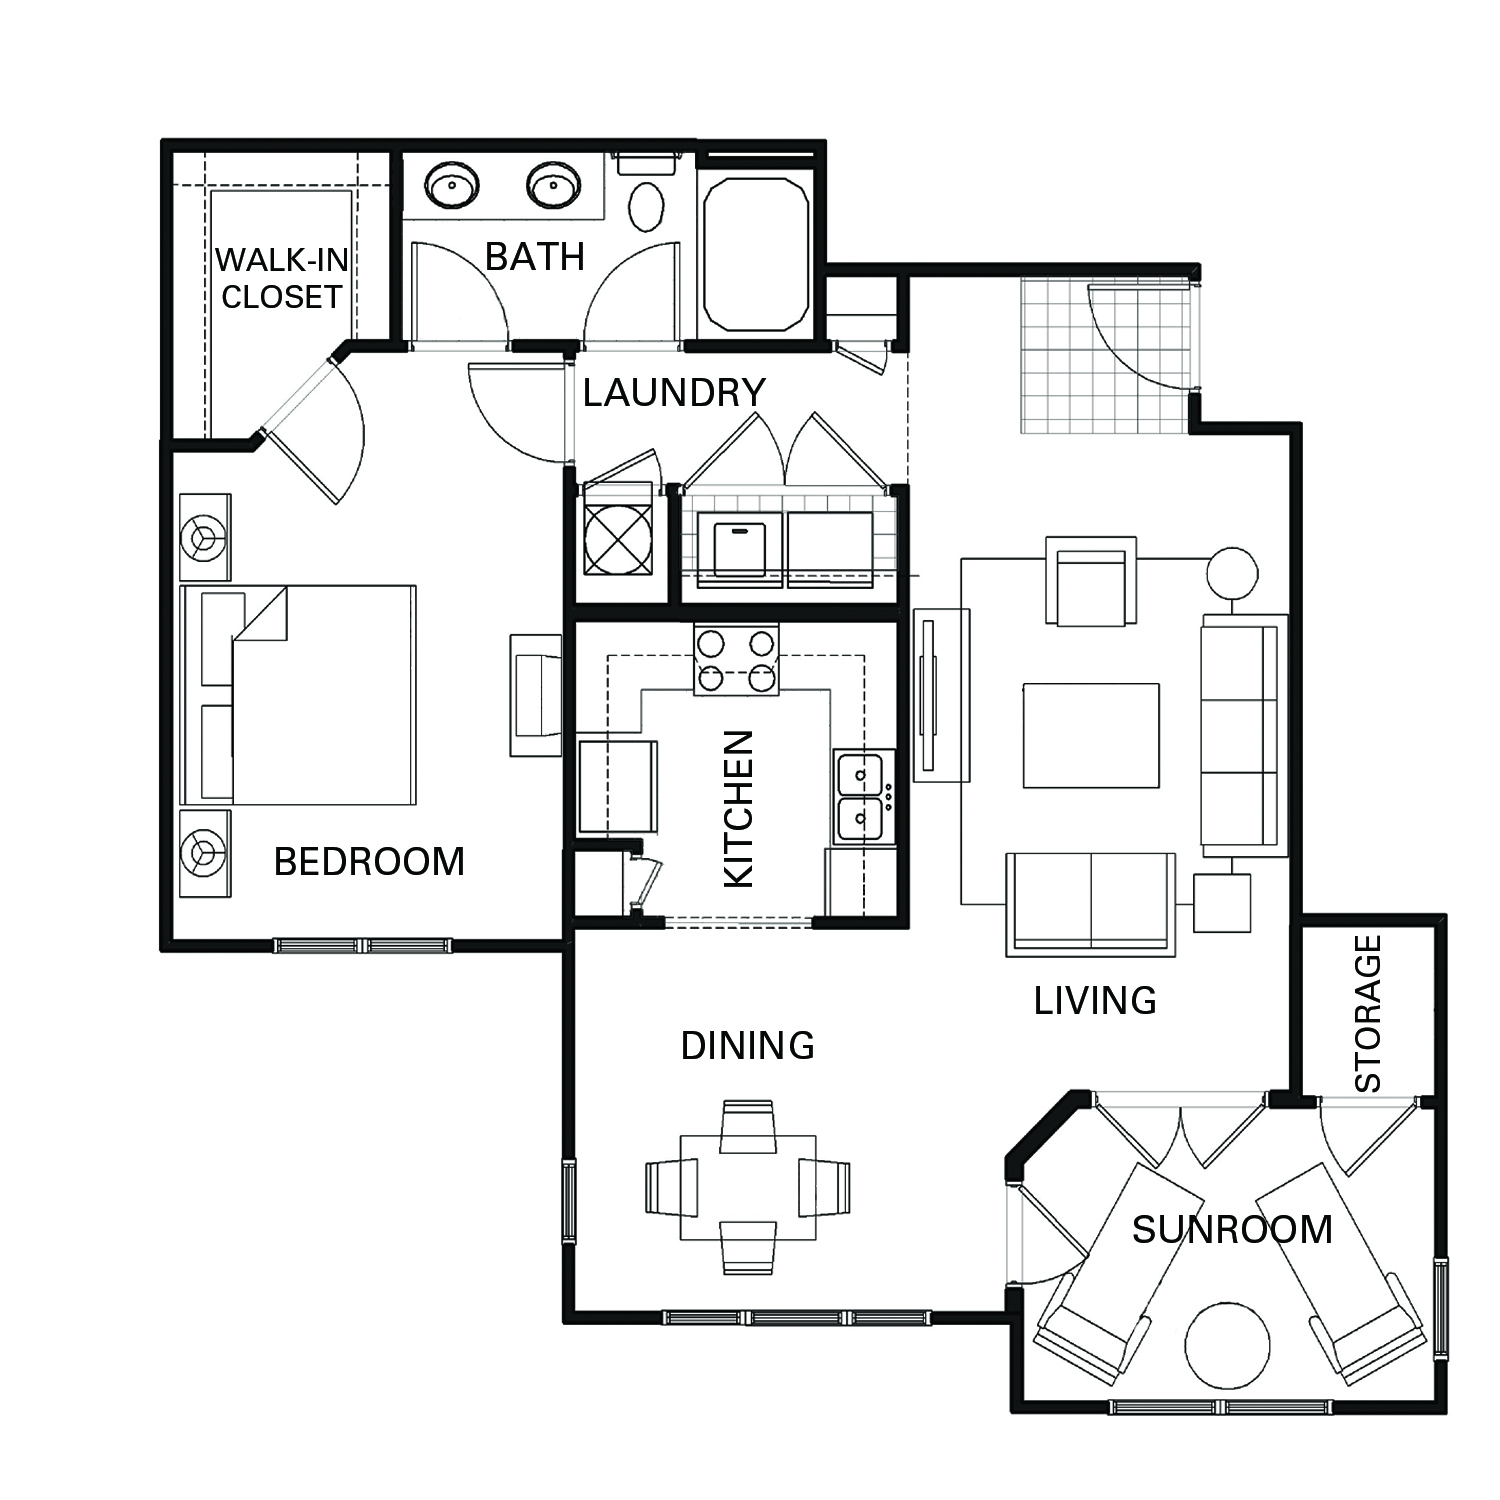 One bedroom one bathroom A4 floorplan at The Apartments at Blakeney in Charlotte, NC